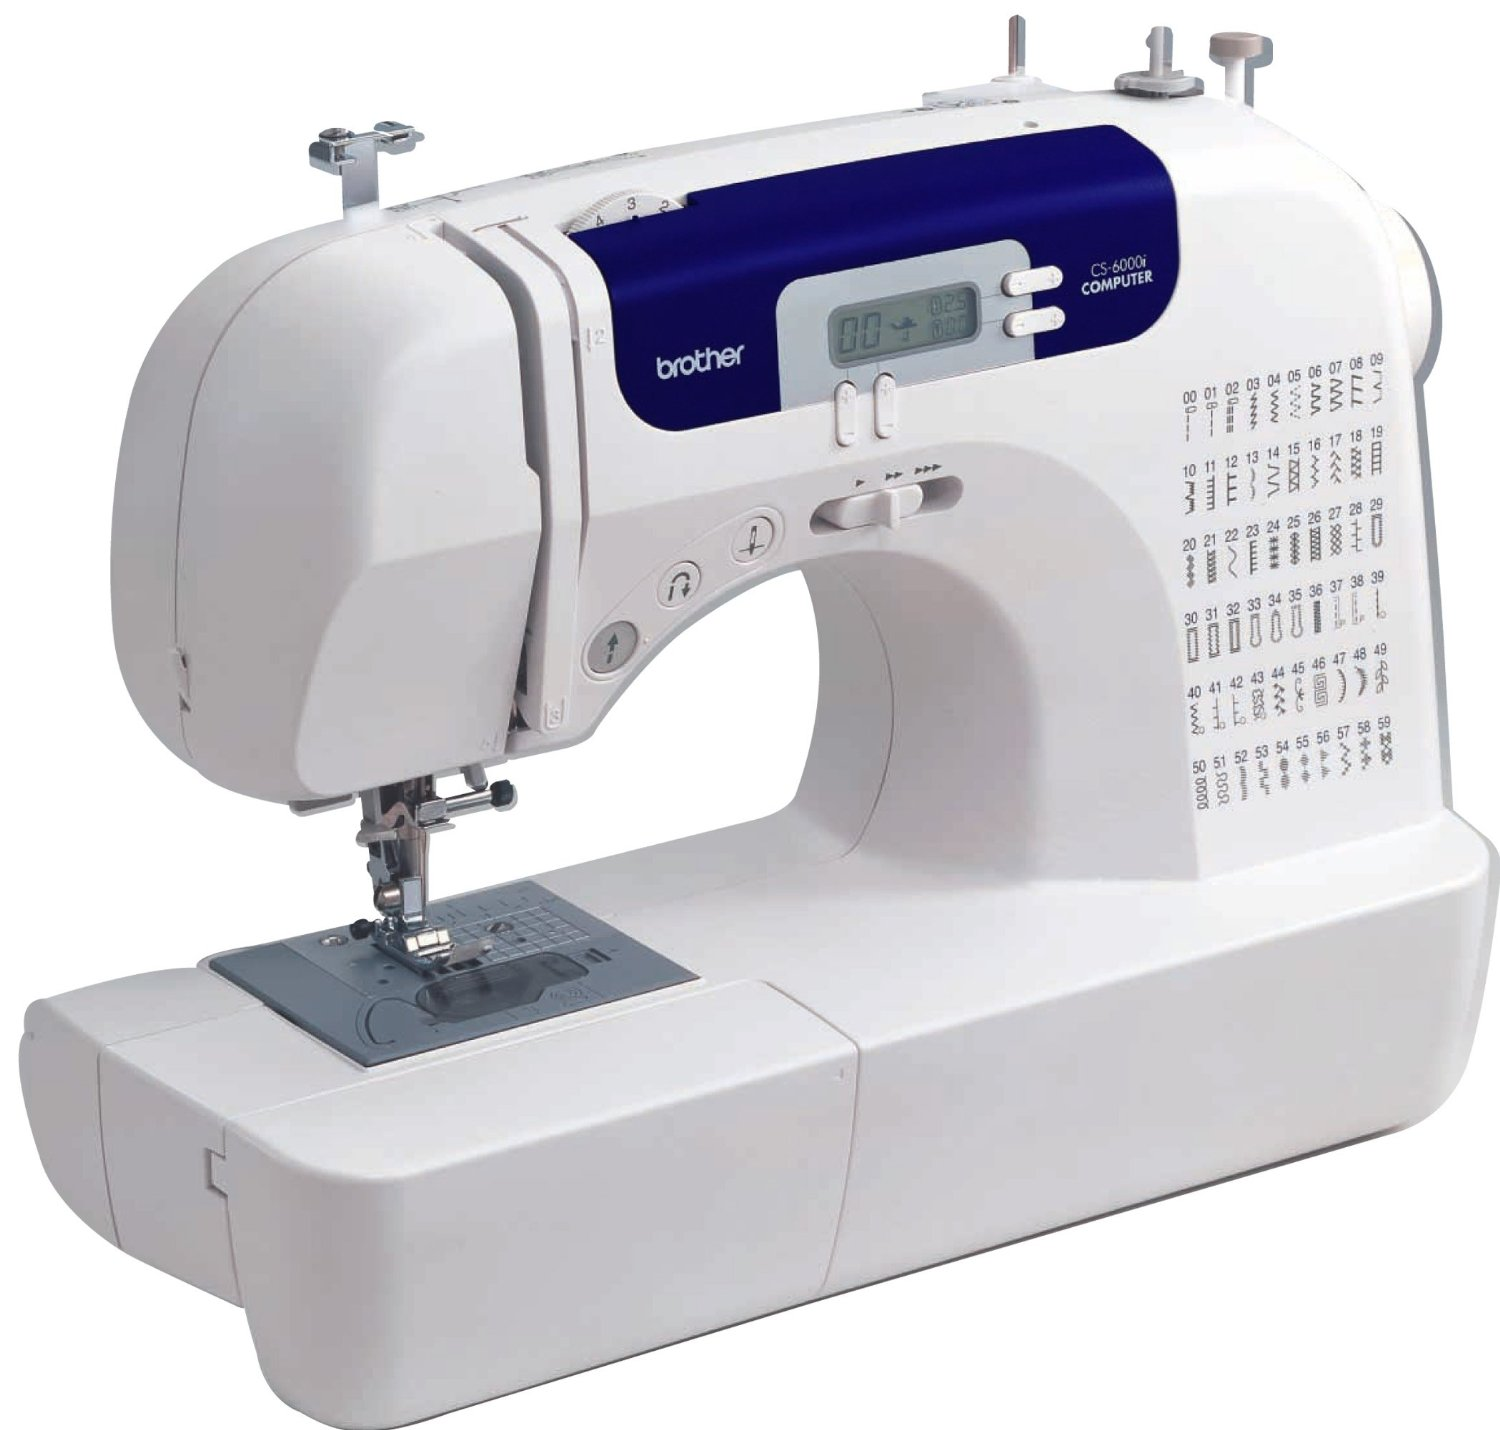 sewing and machine Looking for sewing machine amazoncom has a wide selection at great prices to help you get creative.